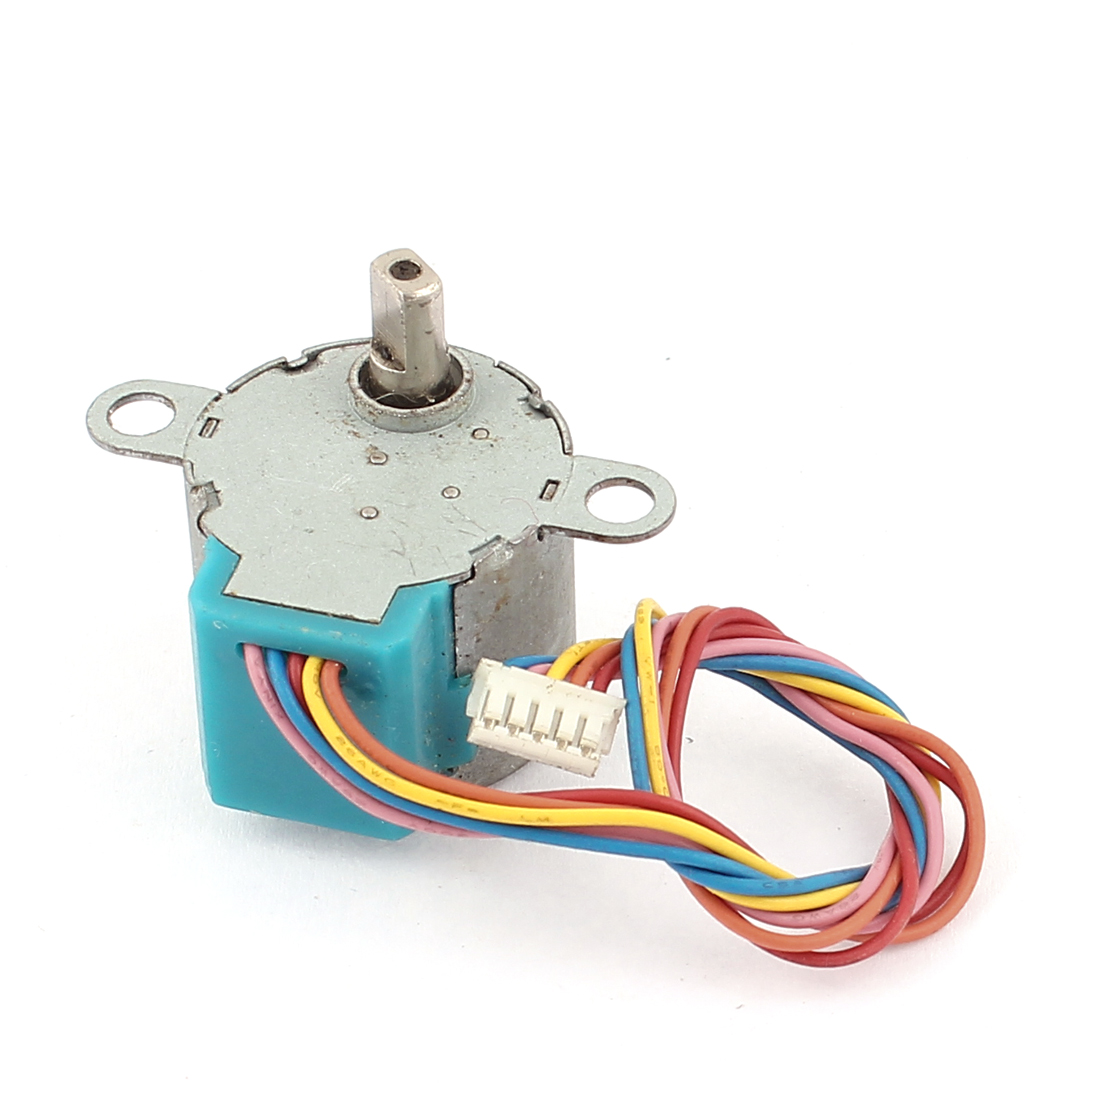 DC 5V 4 Phase 5 Wire Gear Stepper Reduction Motor